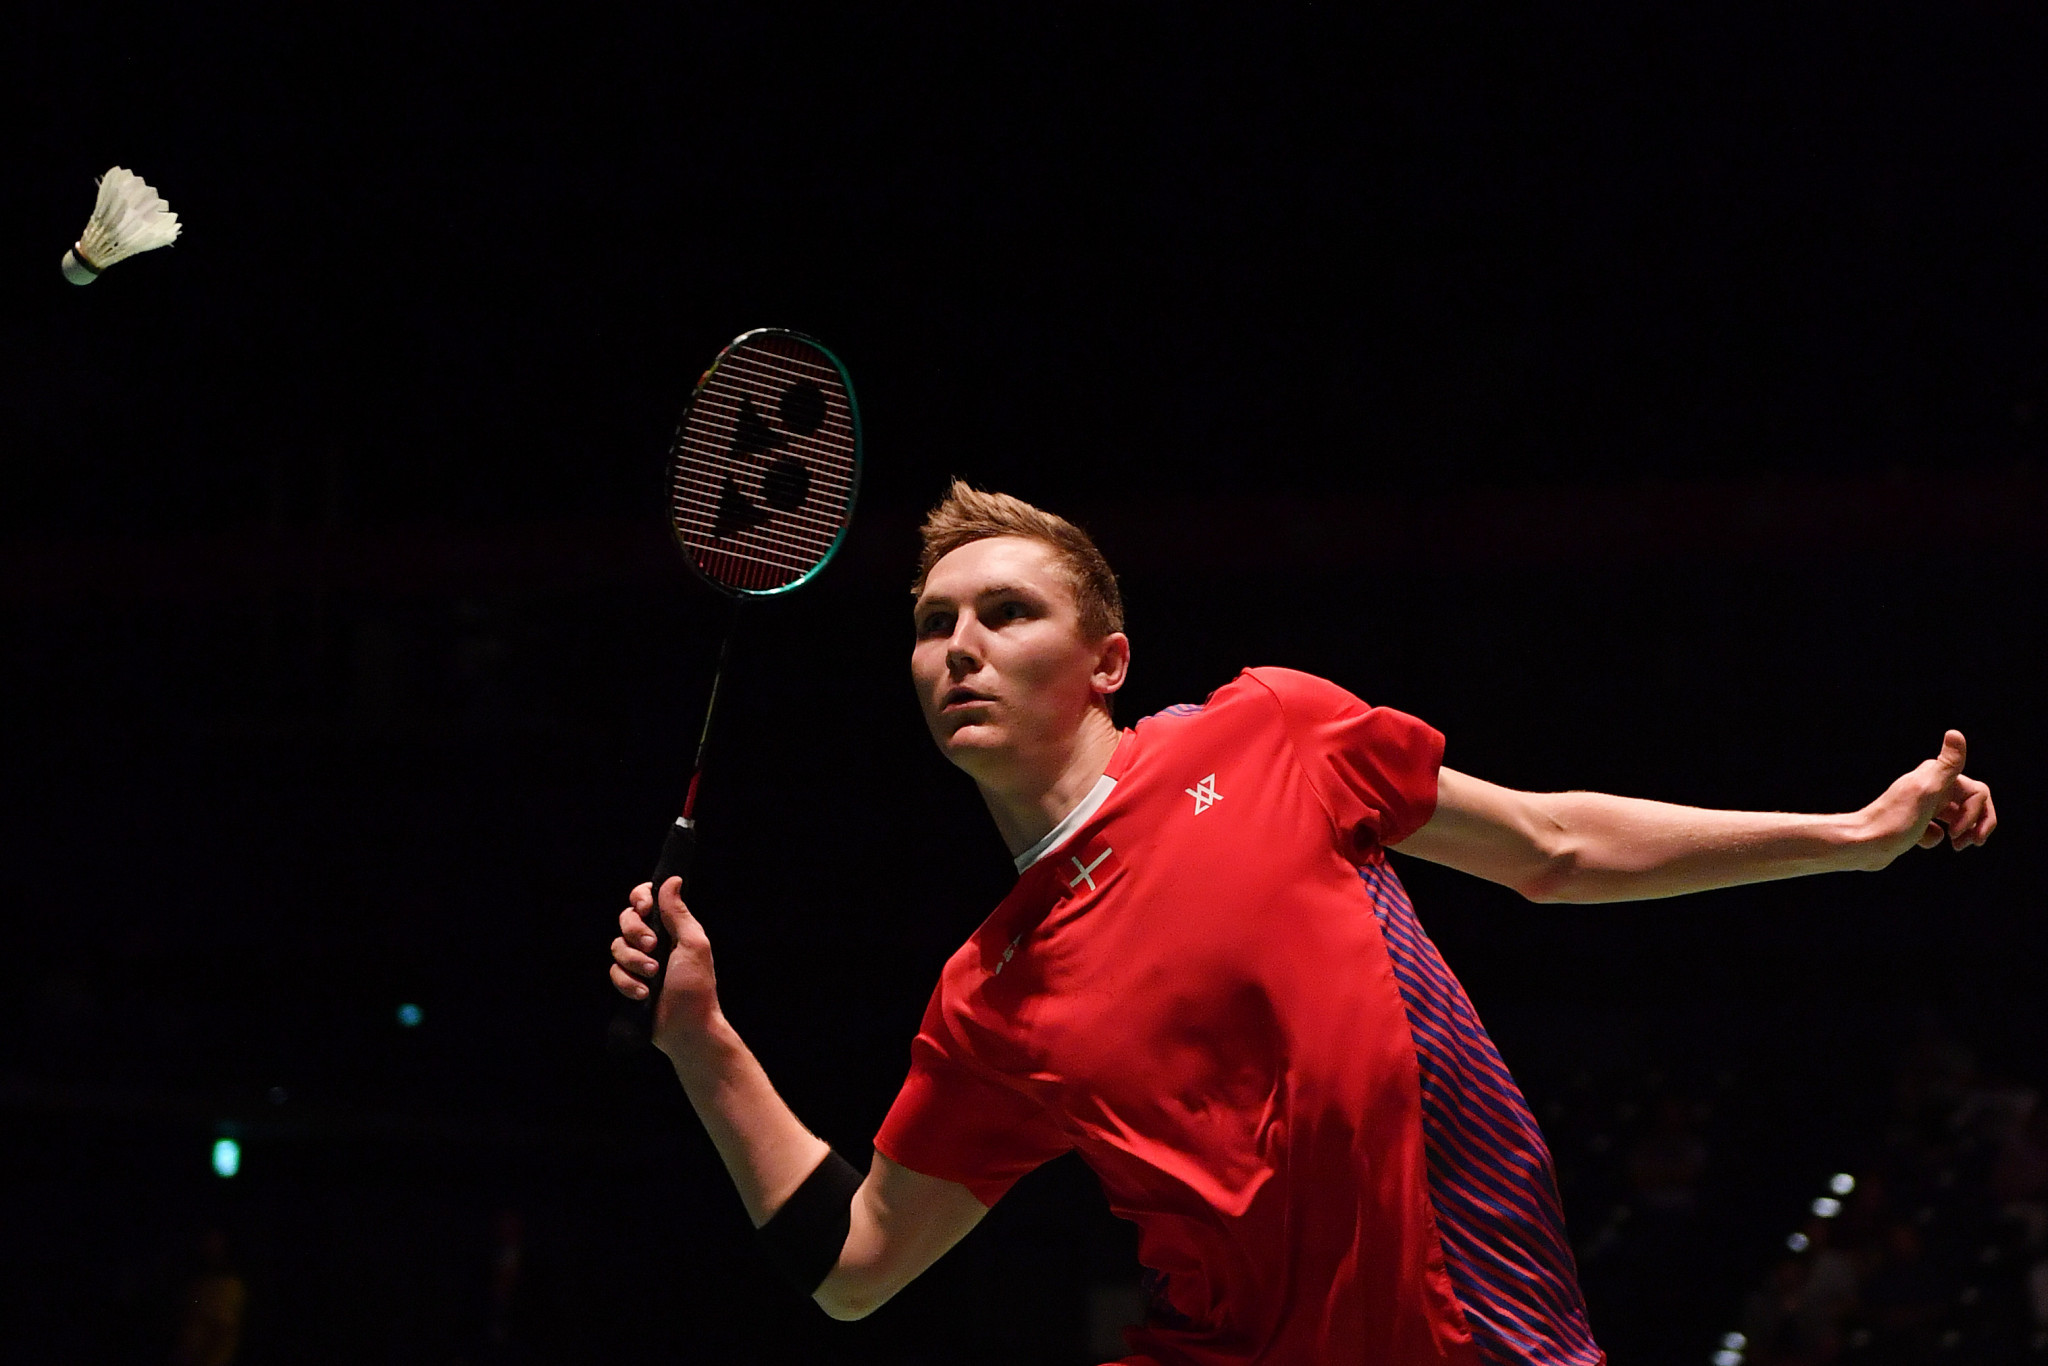 Olympic champion Axelsen leads Denmark to semi-final of Thomas Cup